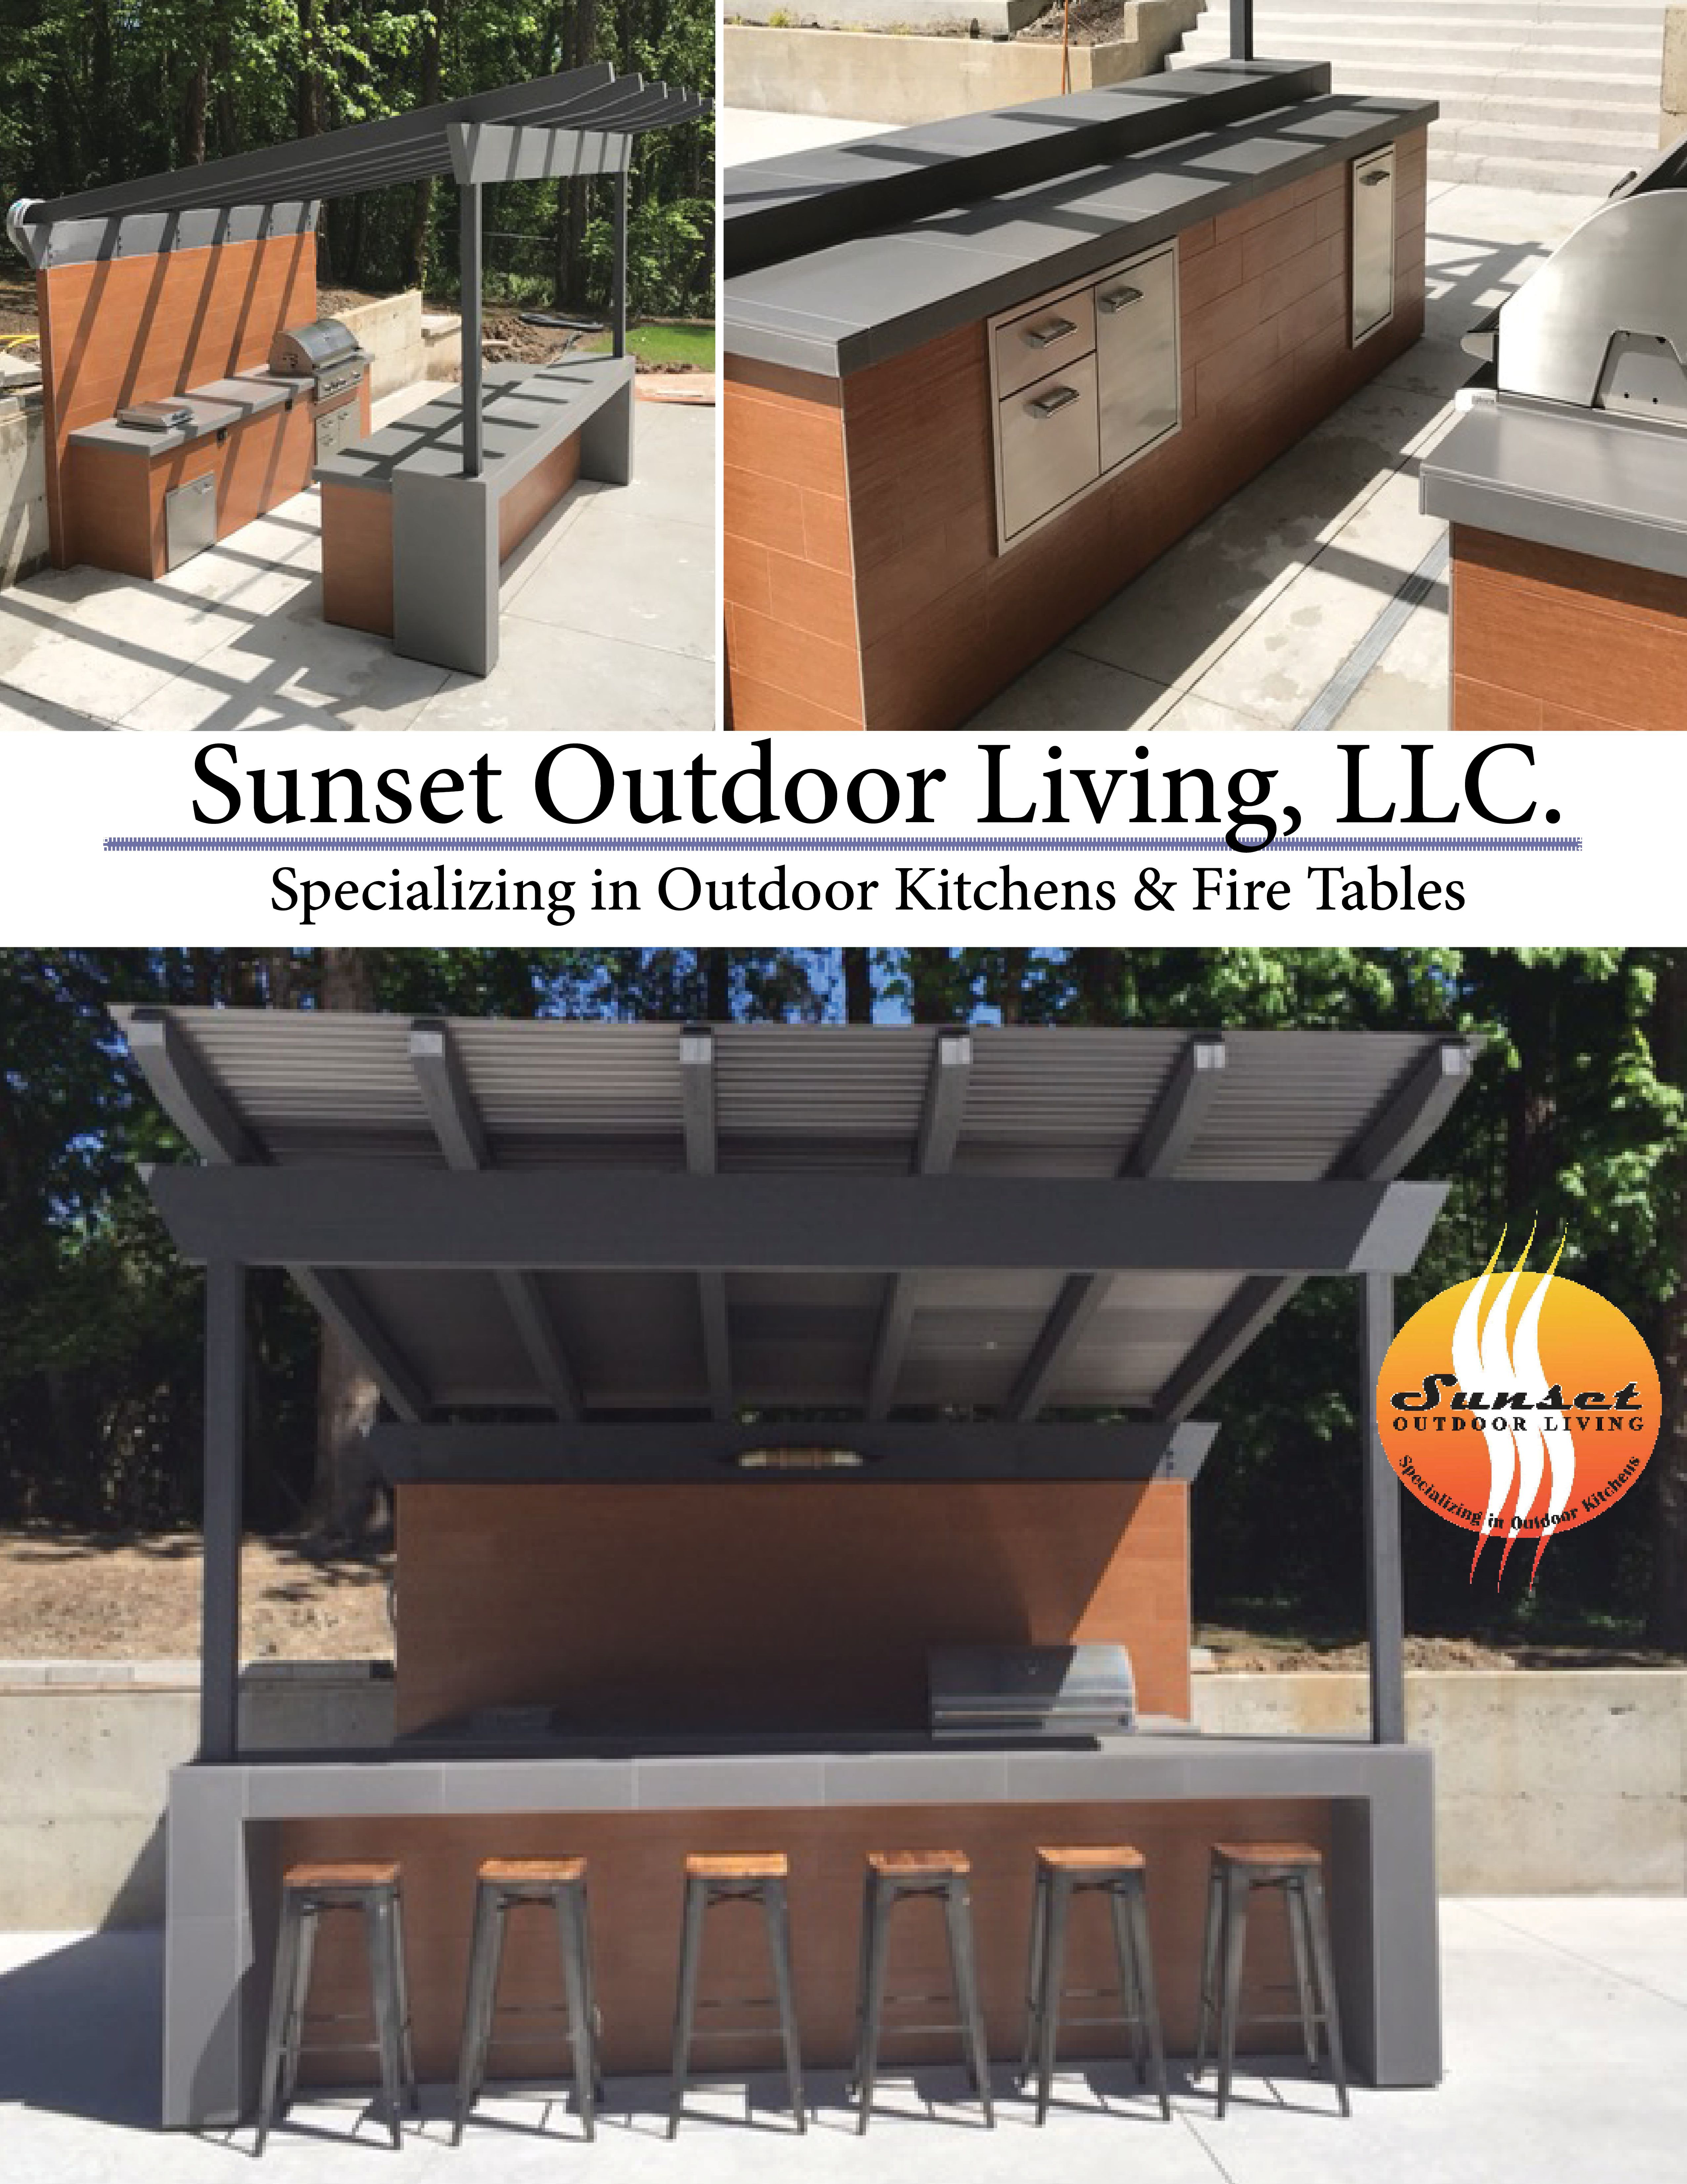 June 2017 Custom Outdoor Kitchen In Portland Oregon Custom Created In Our Facility Then Delivered Installed With Images Outdoor Living Design Outdoor Kitchen Outdoor